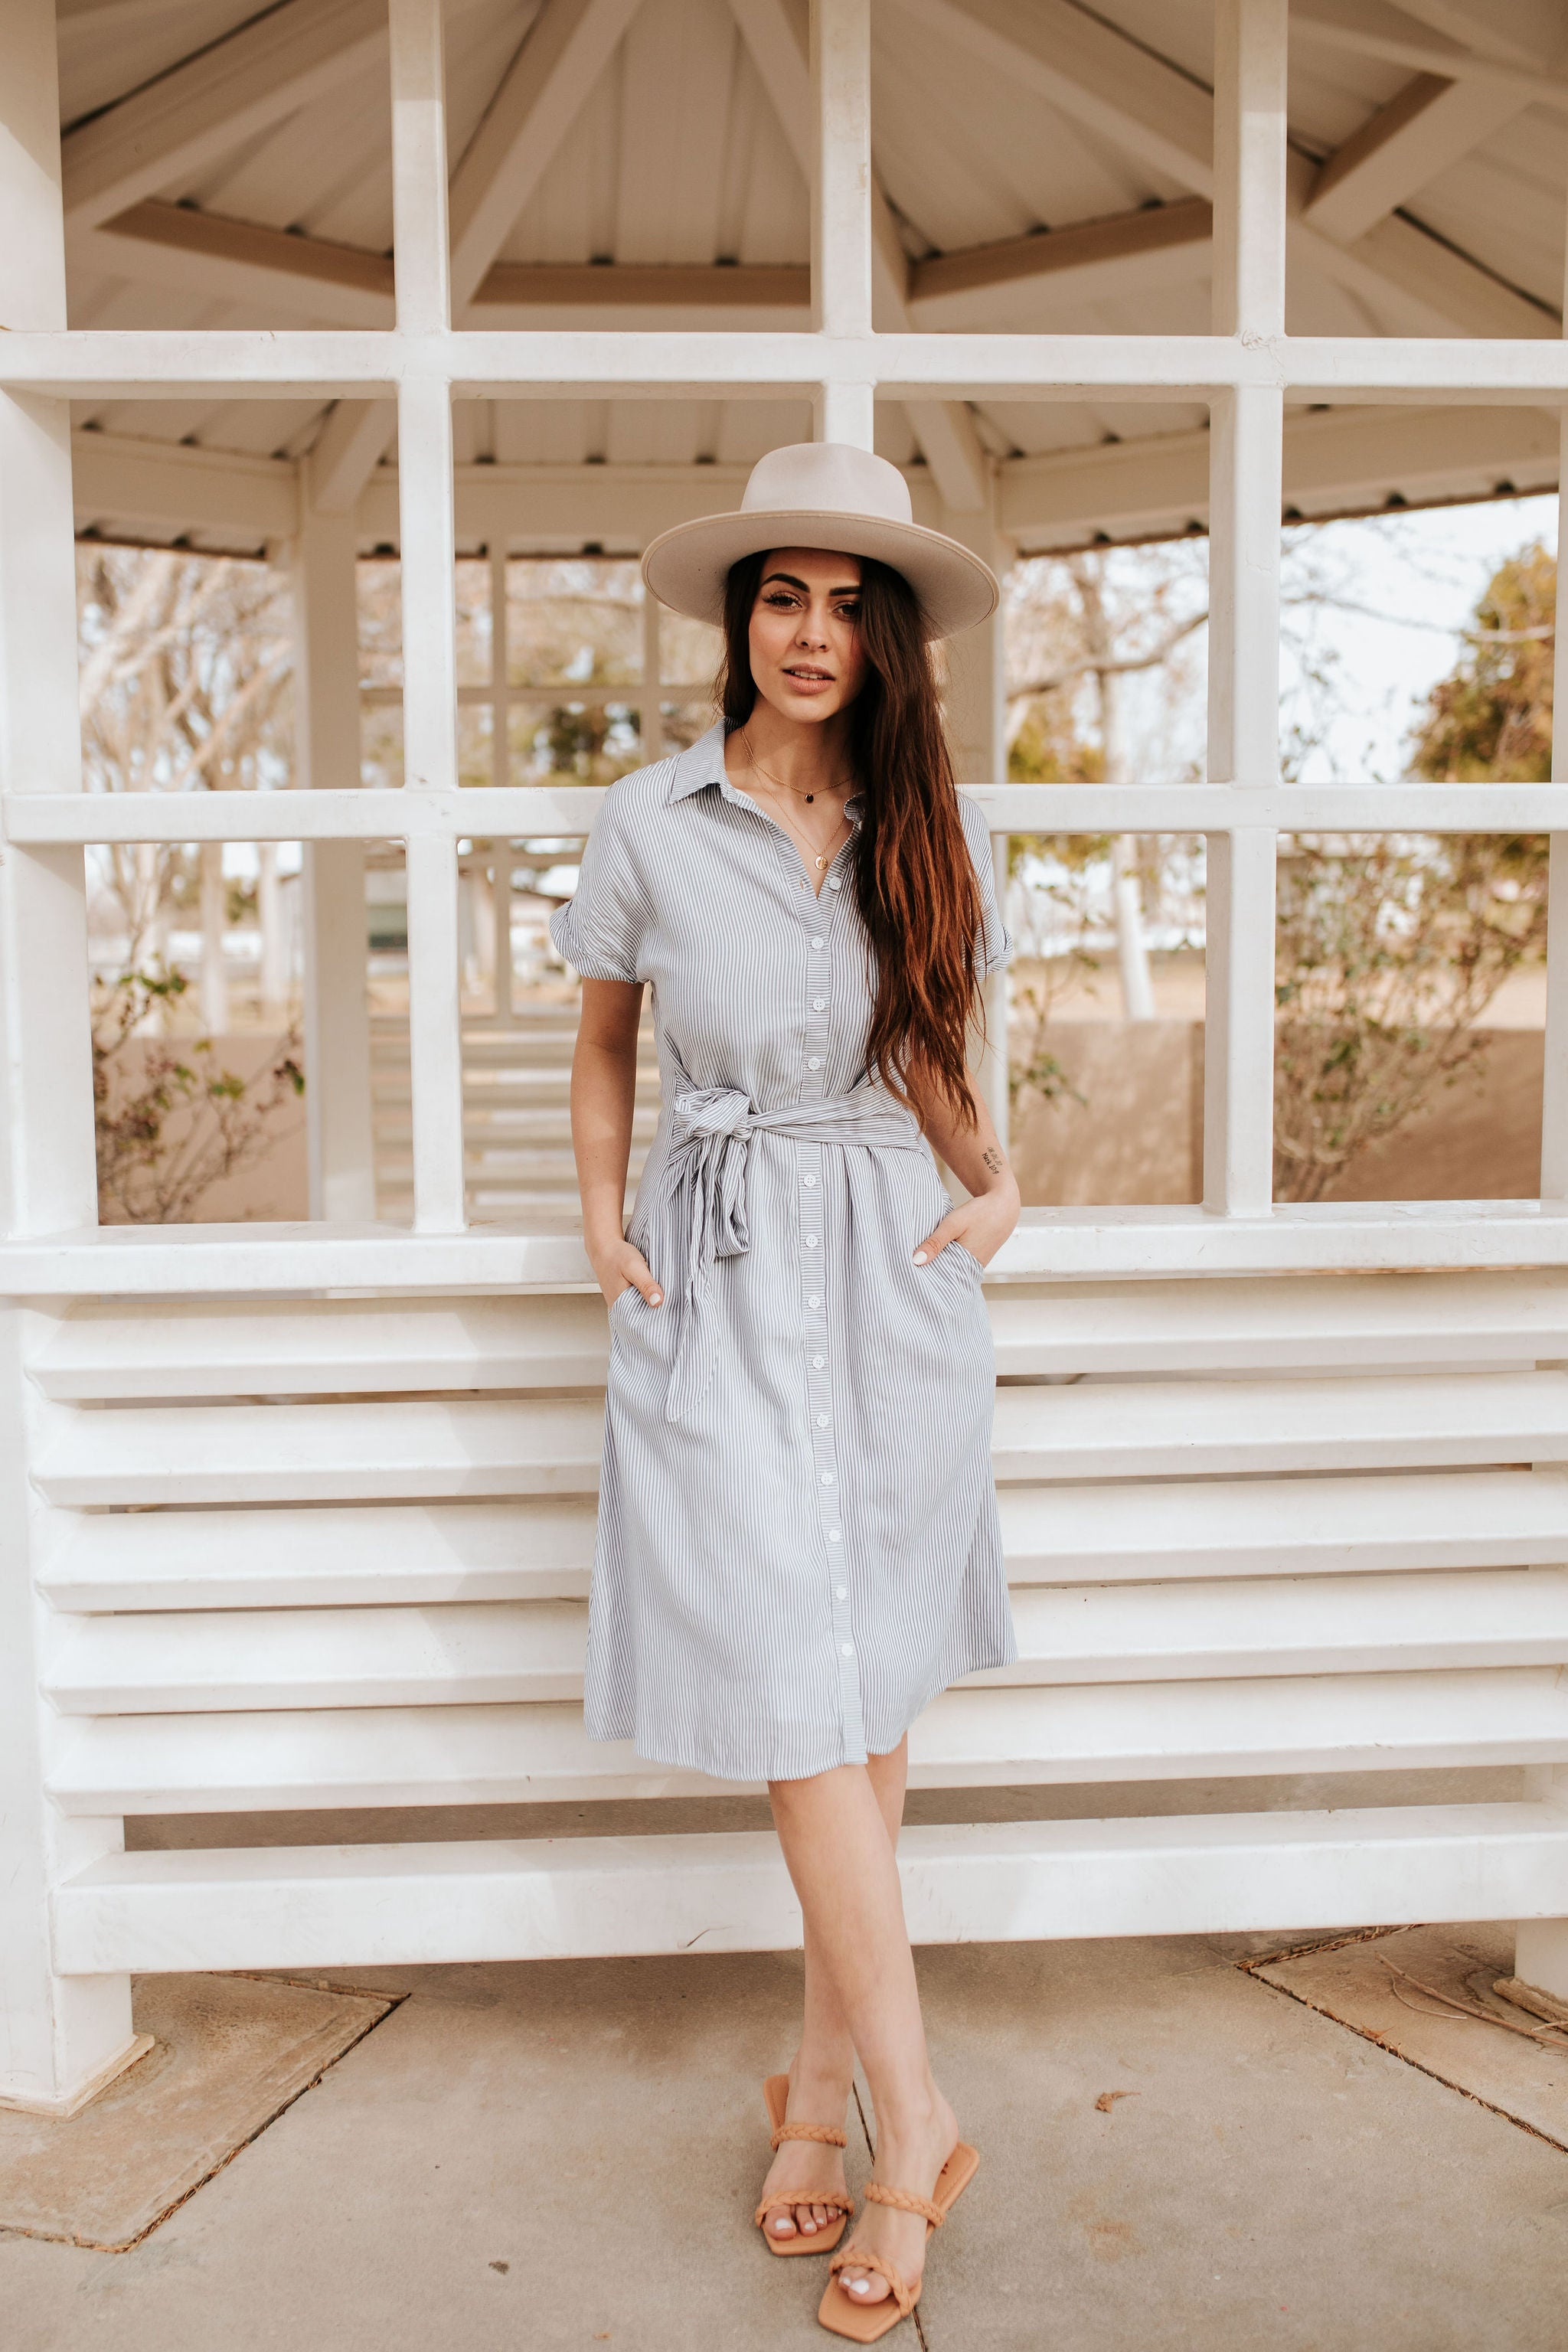 THE PINK DESERT PINSTRIPE HAMPTON BUTTON DOWN DRESS